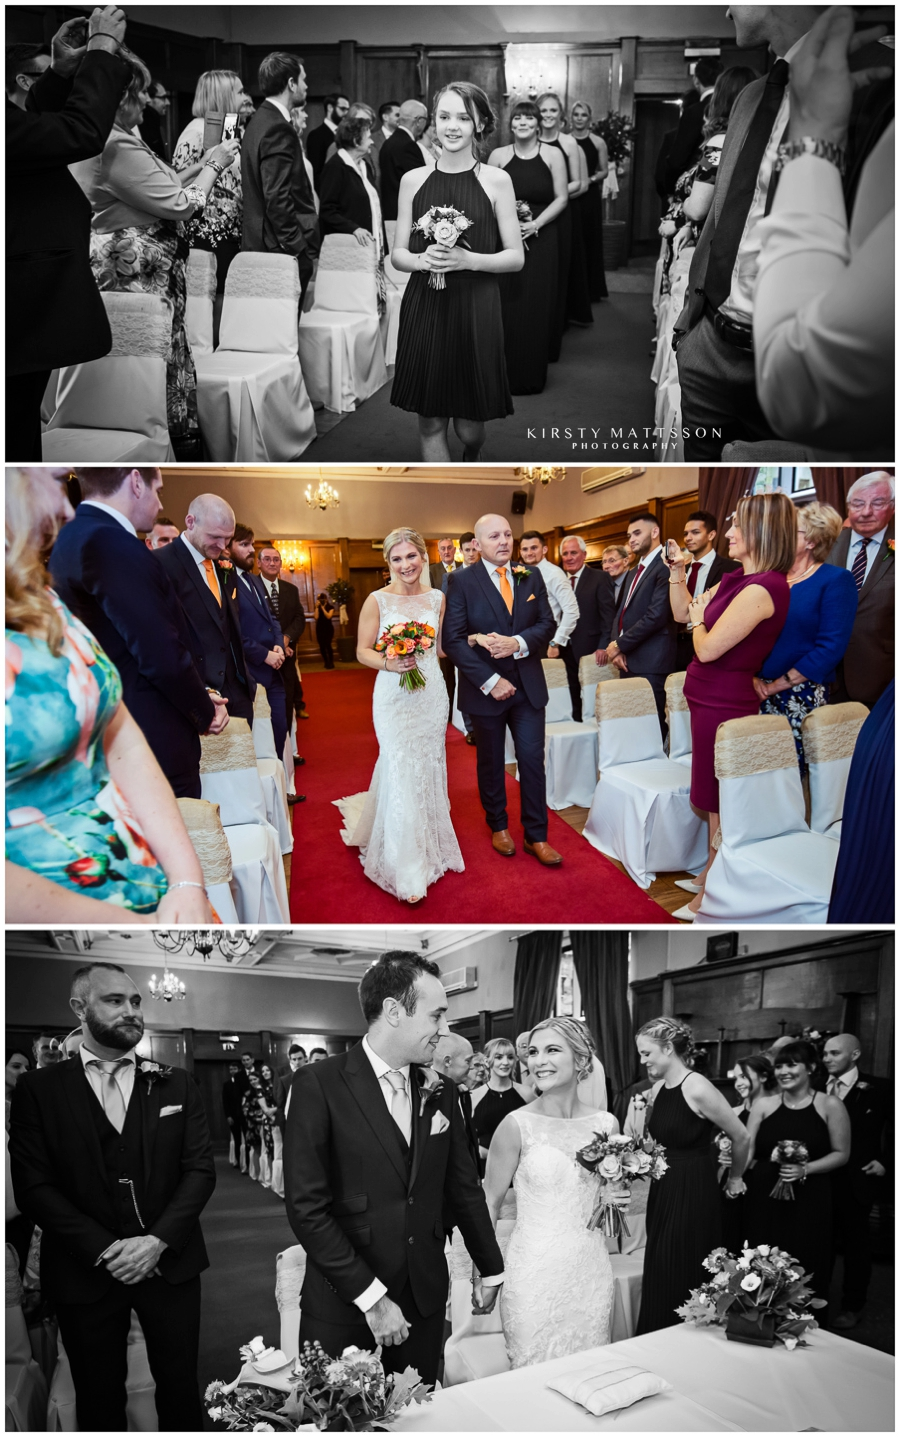 KM-rr-weddingphotography-13